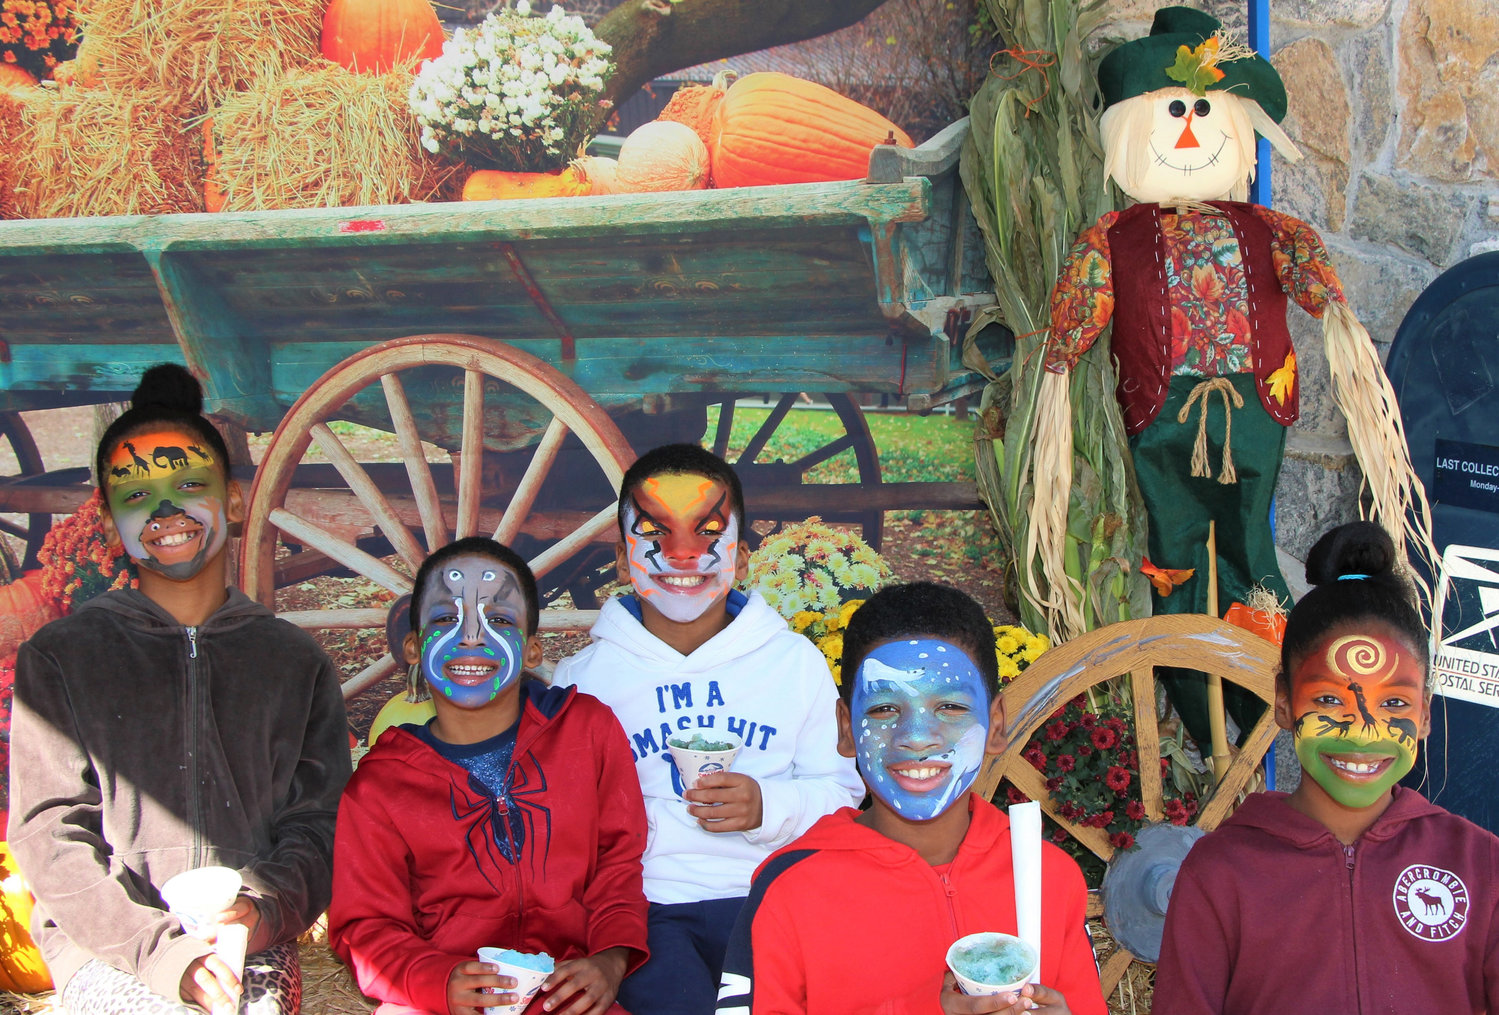 Alexa, Mason, Nicholas, Braxton and Kiera Sinclair had their faces painted at the Grand Baldwin Festival last weekend.